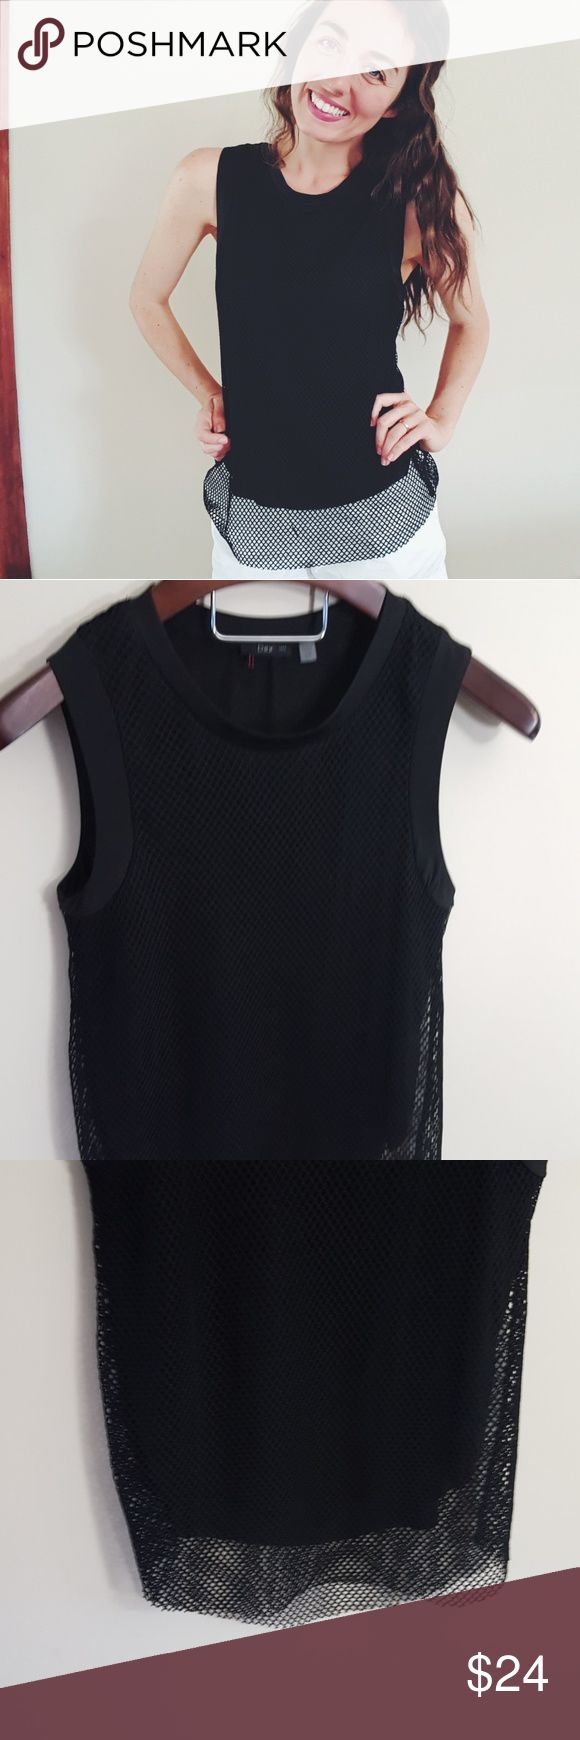 Dex | black mesh tank | small In excellent condition! Dex mesh black tank! Loose fit and lined. Not sheer. Size small. Used item, some signs of wear shown by pictures ❤ Bundle up! Offers always welcome:) Dex Tops